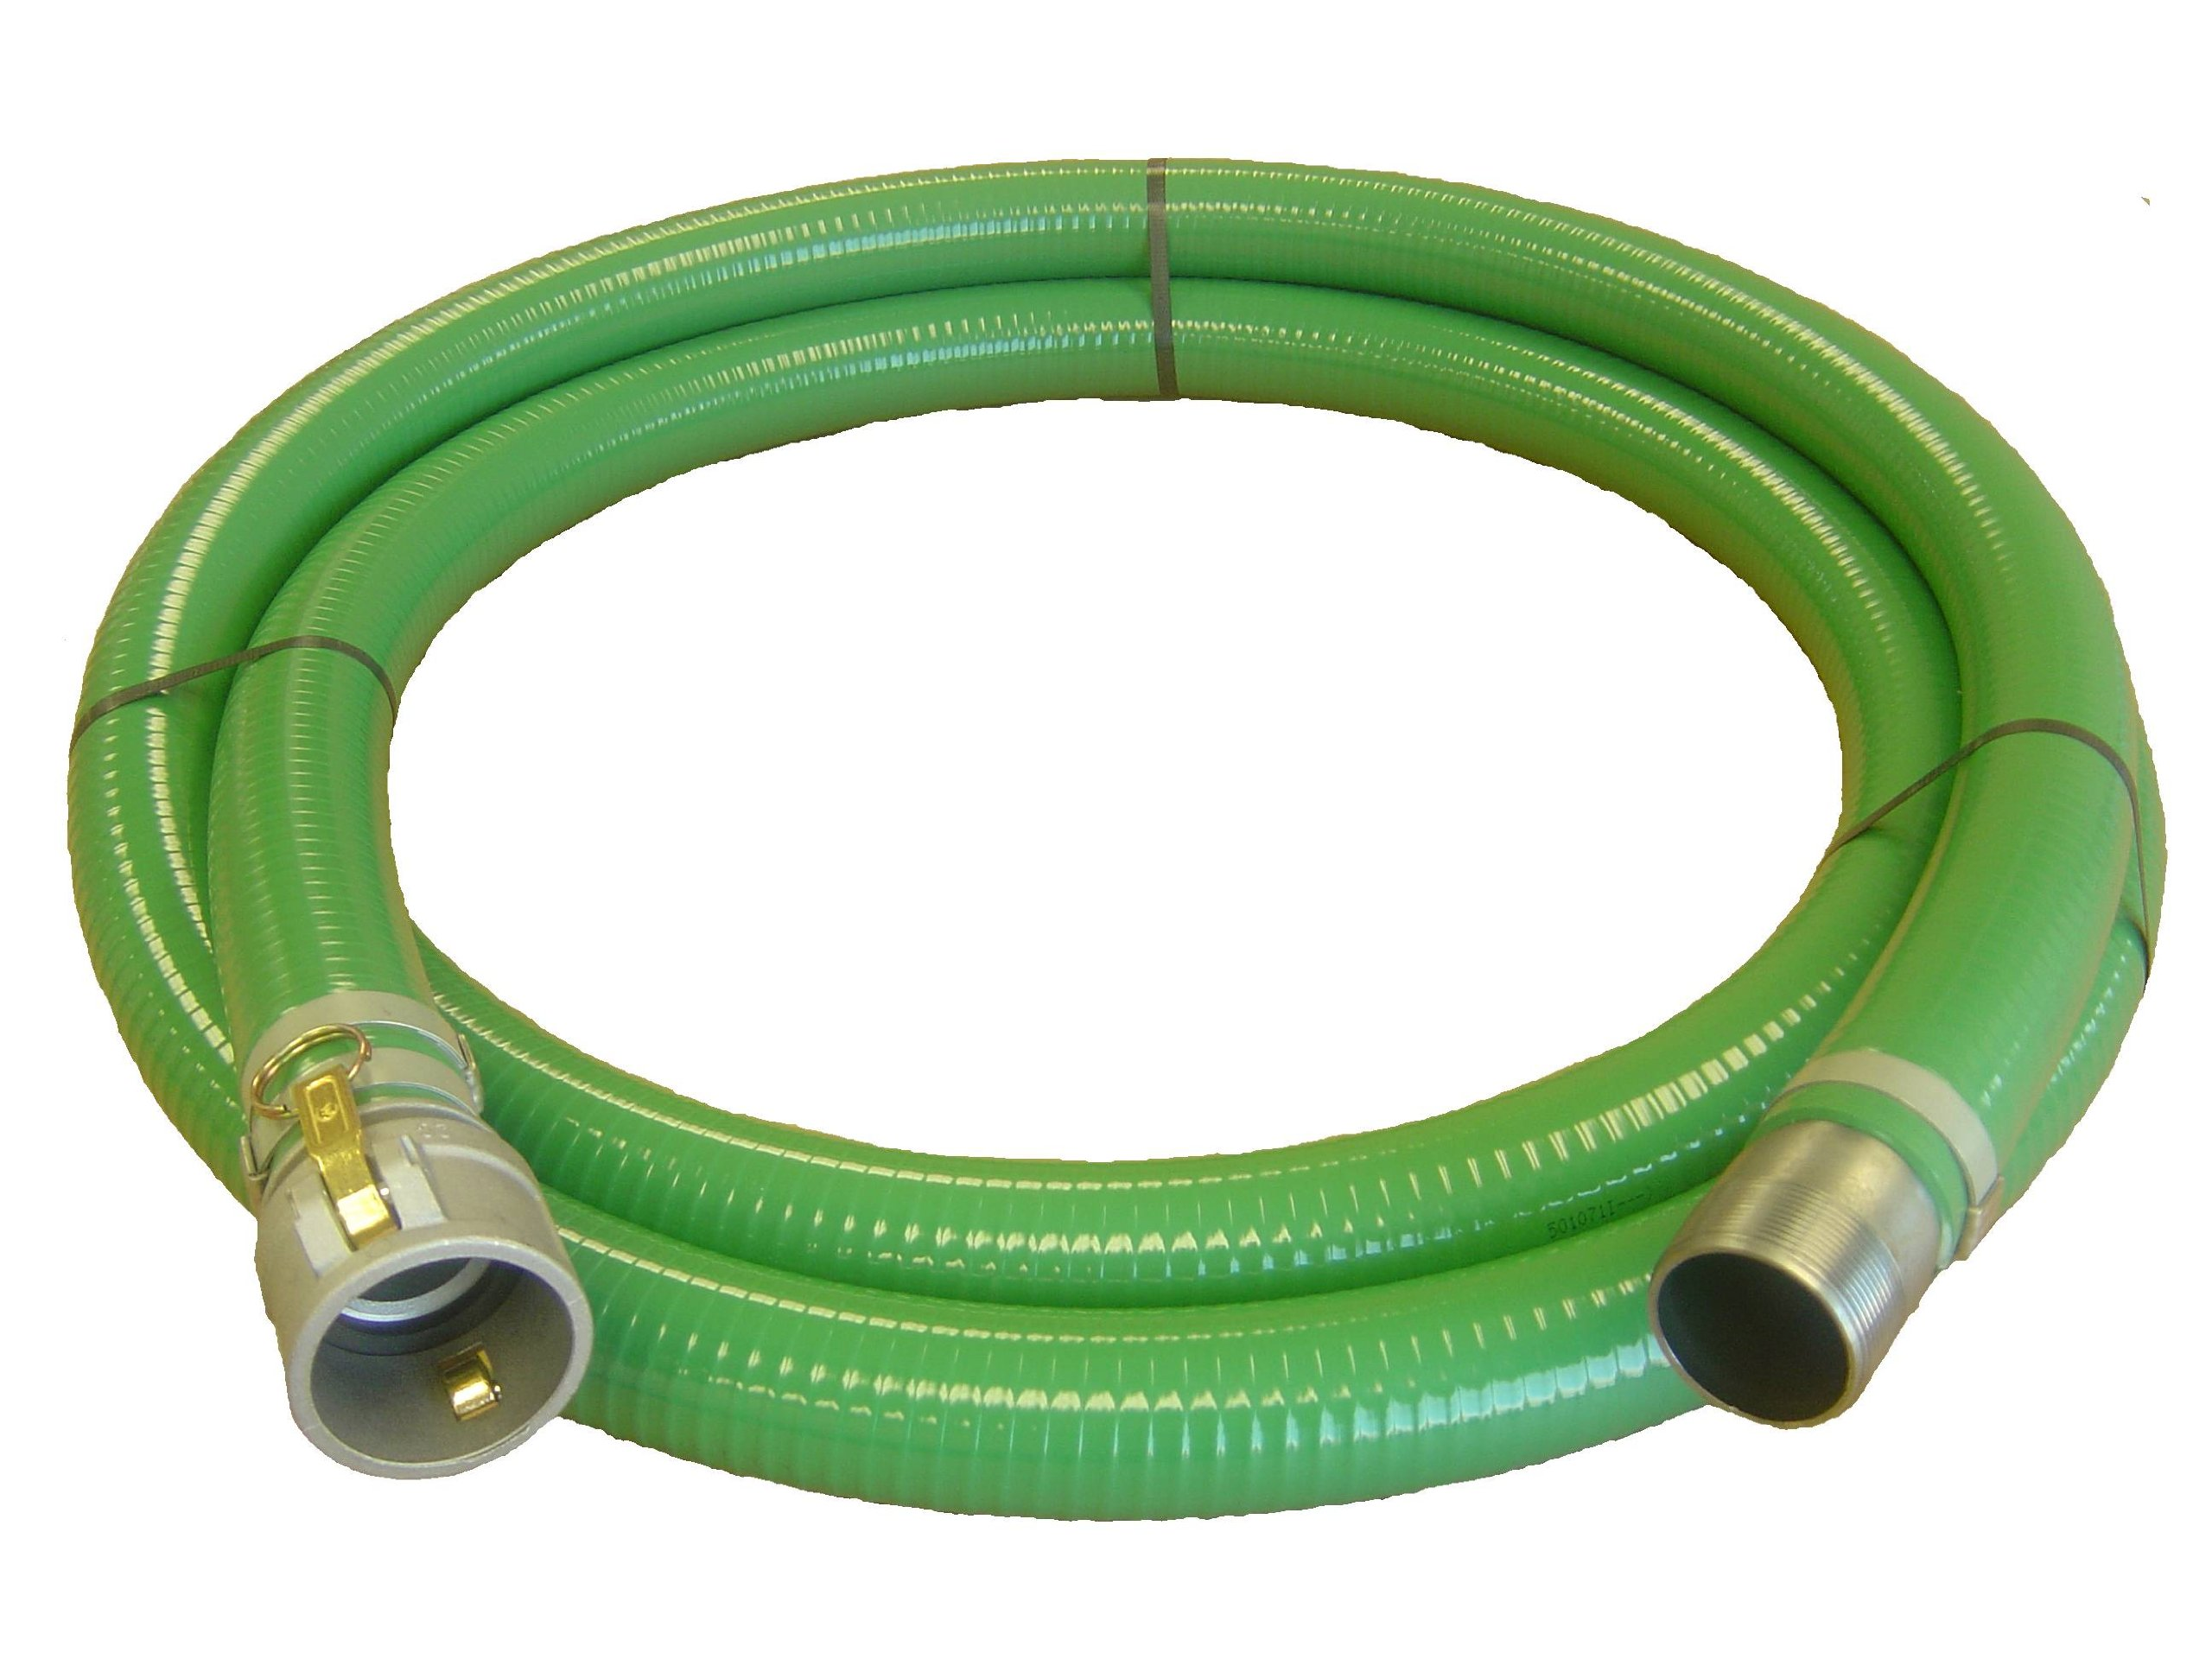 Abbott Rubber PVC Suction Hose Assembly, Green, 2'' Female Cam and Groove X Male NPT, 65 psi Max Pressure, 20' Length, 2'' ID by Abbott Rubber